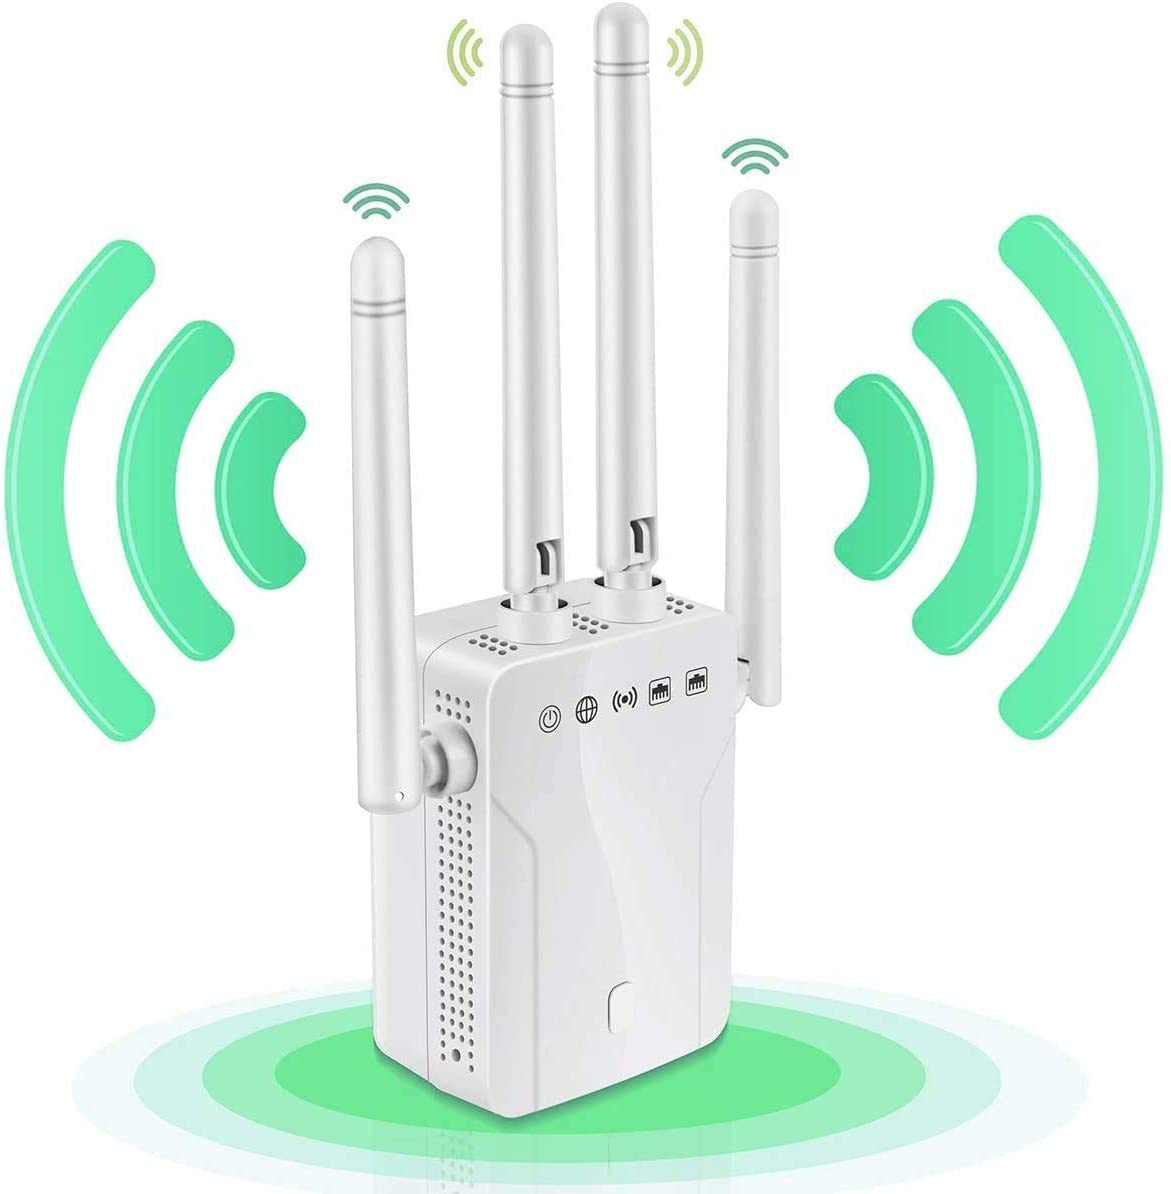 WiFi Range Extender, 1200Mbps Wireless Signal Repeater Booster, Dual Band 2.4G and 5G Expander, 4 Antennas 360° Full Coverage, Extend WiFi Signal to Smart Home & Alexa Devices(XMH1200N05)